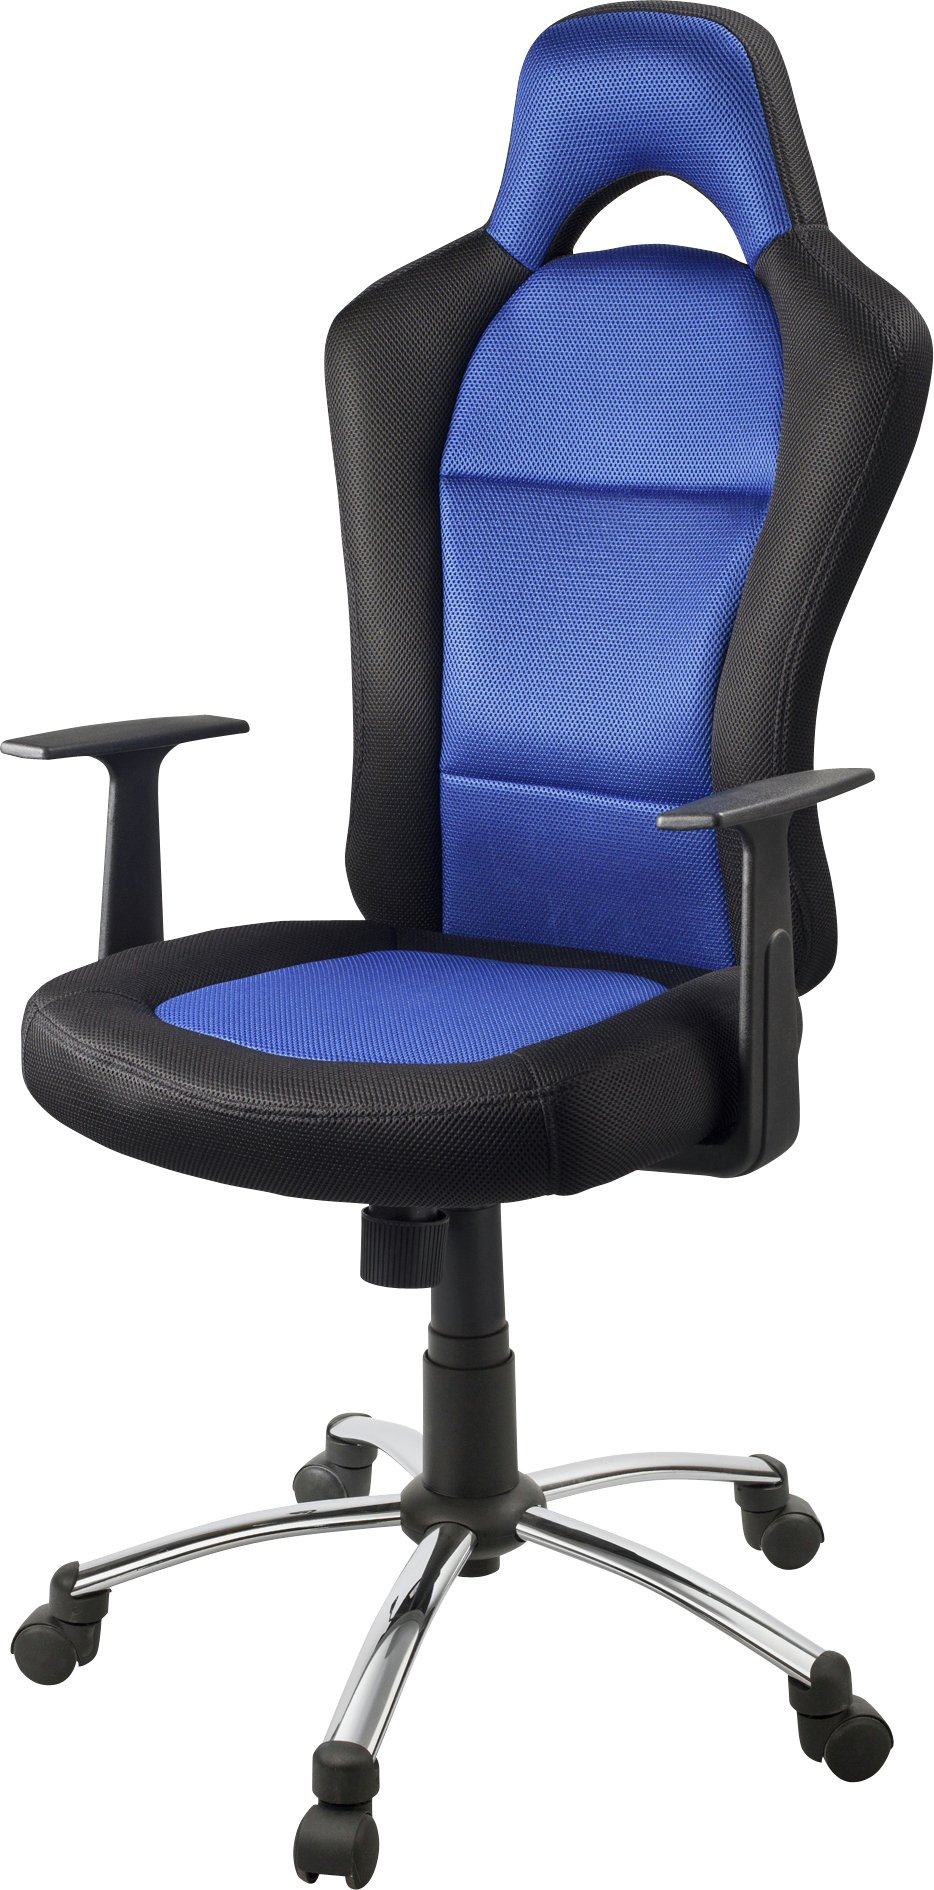 home gaming office chair blue and black